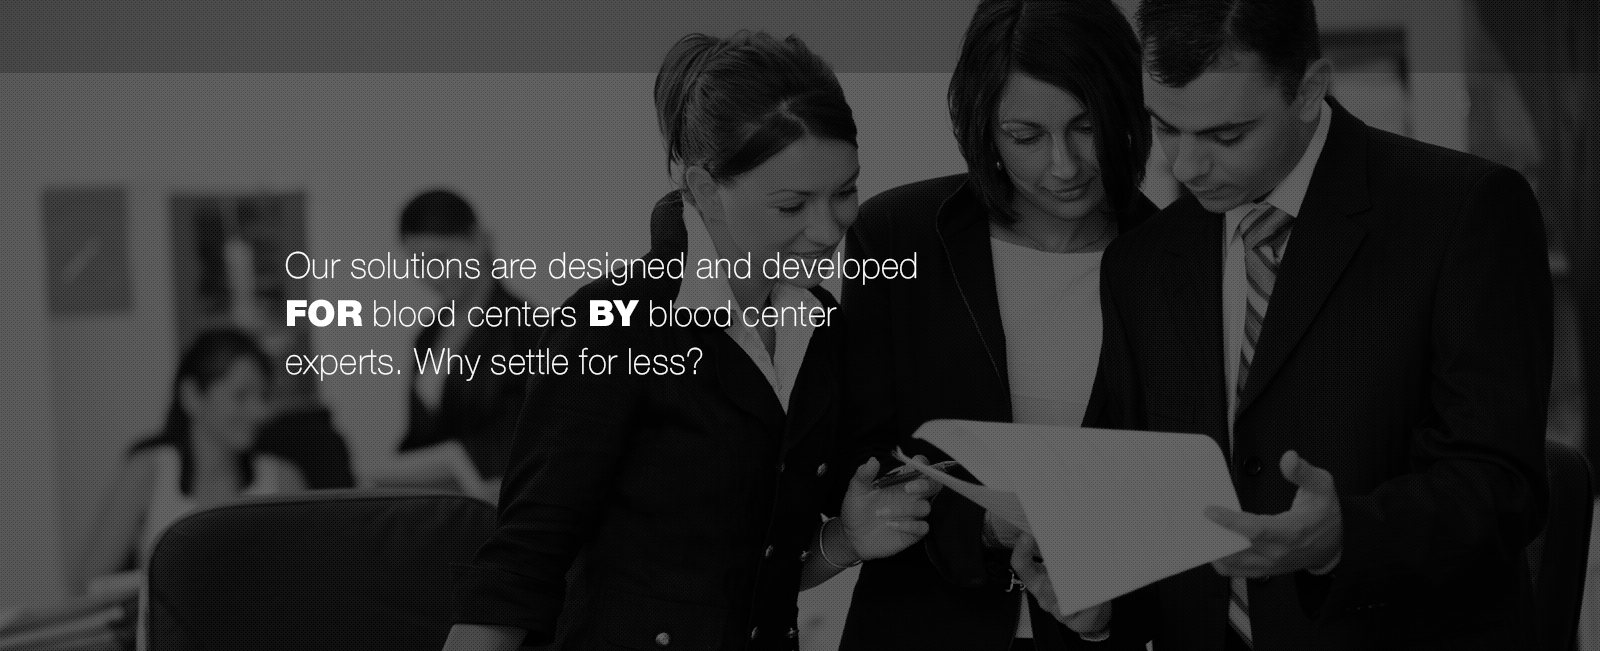 Software developed FOR blood centers BY blood center experts. Why settle for less?